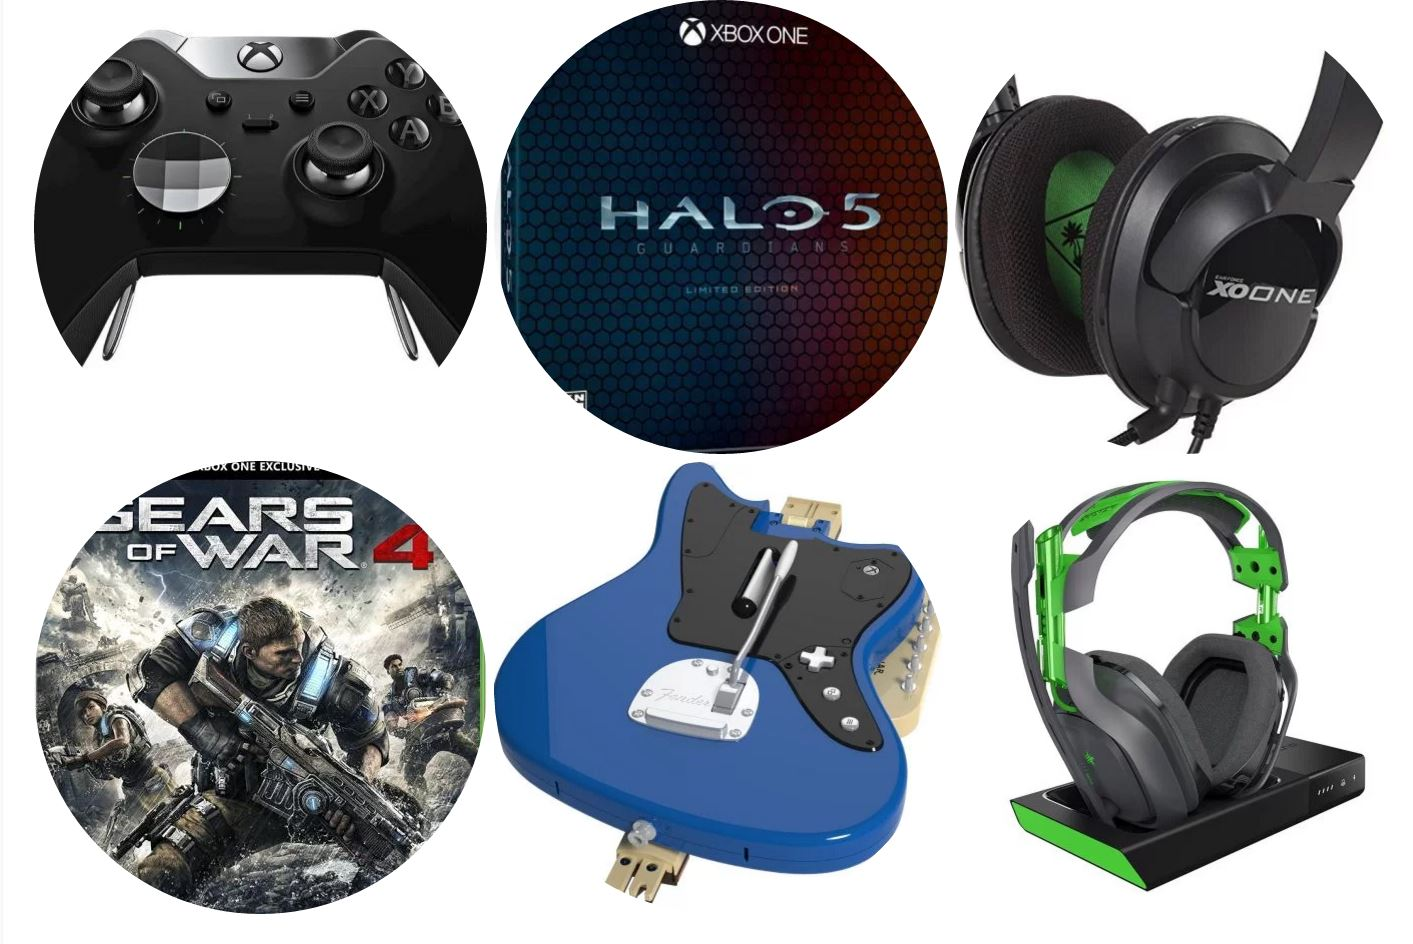 if youre looking for a gift ideas for someone who loves to game on xbox then here are some ideas for you if the person doesnt have xbox yet then there